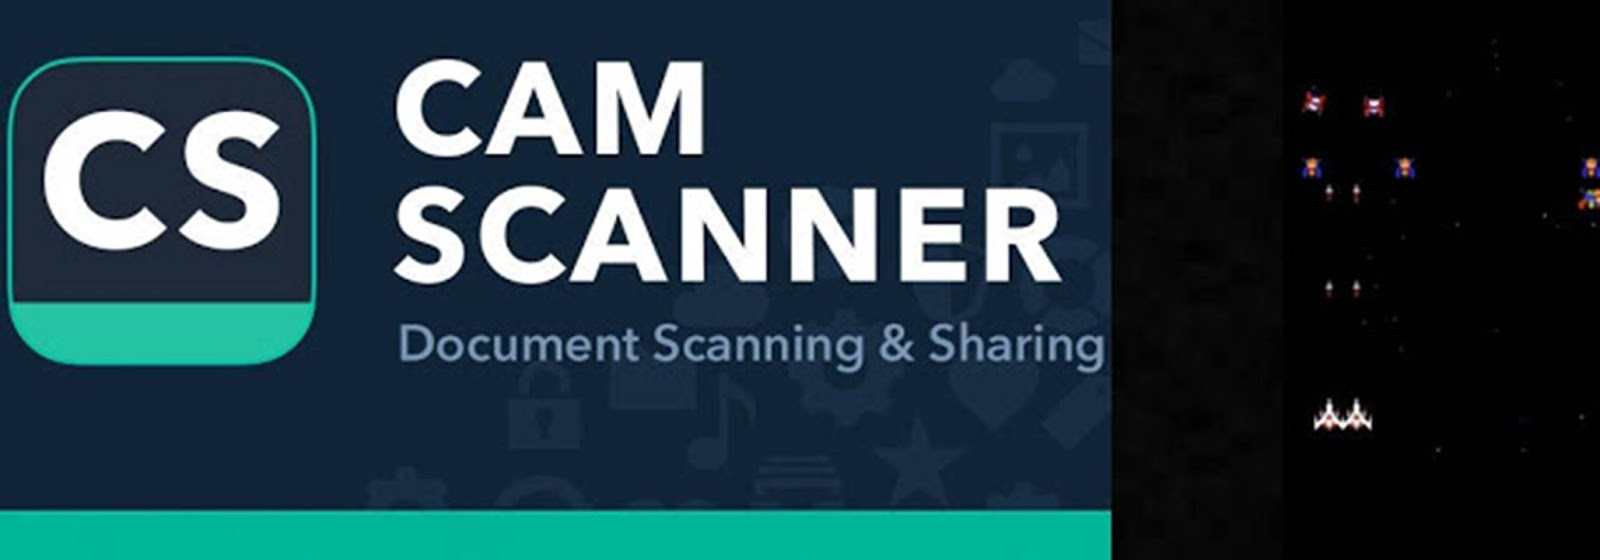 How to Easily Remove Annoying CamScanner Video Ads